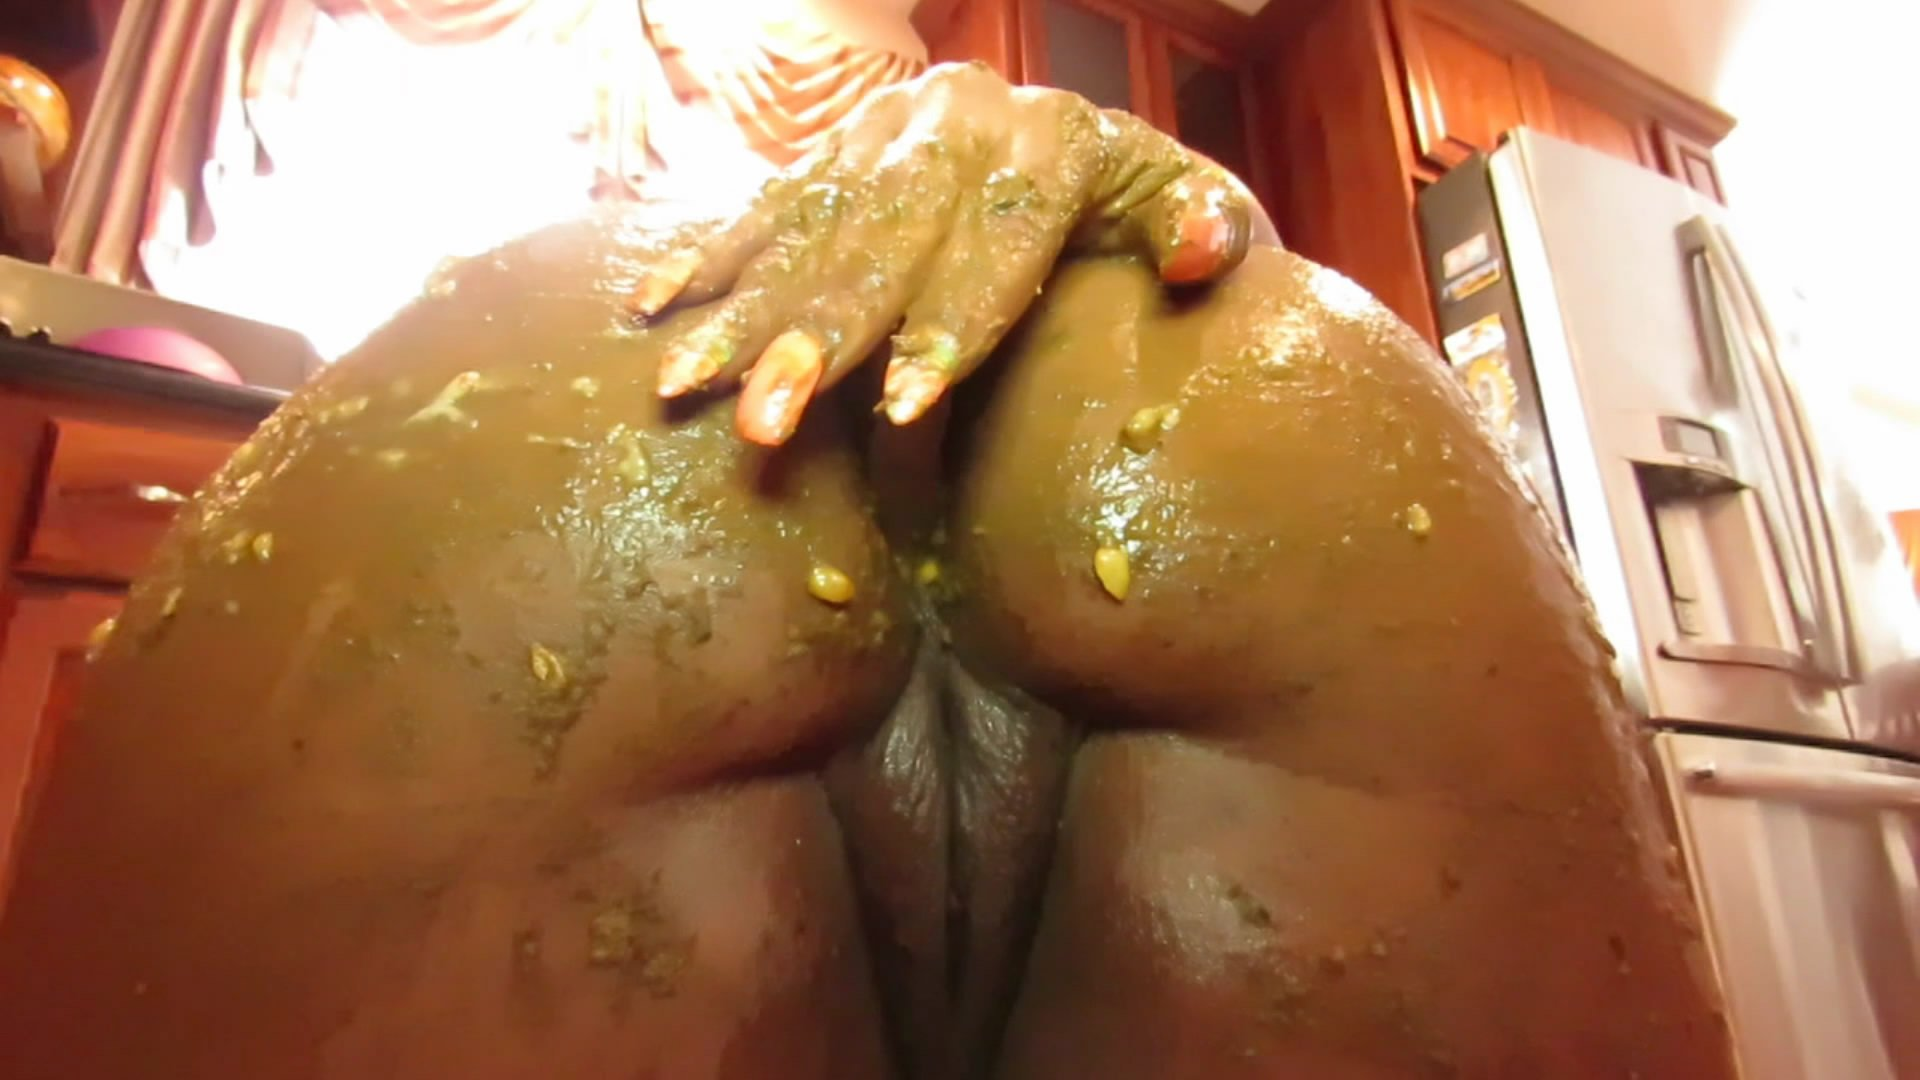 Playing With Food Scat Pt 1 starring in video ScatFreekzClub ($14.99 ScatShop) (Release date: Jun 10, 2021) –  Smearing